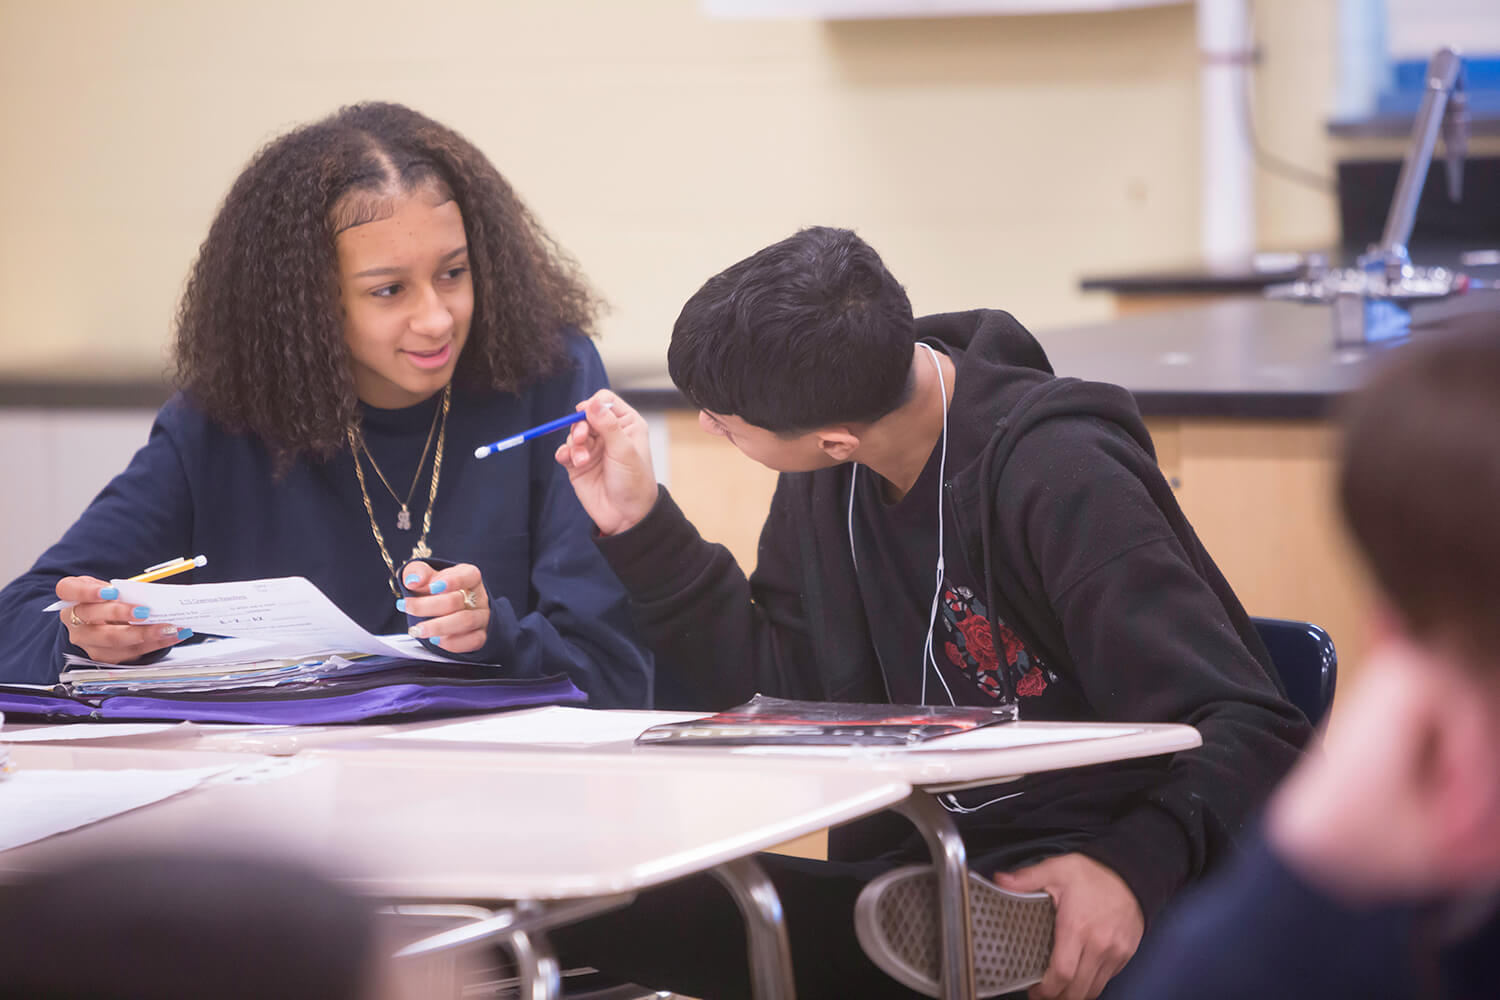 female student with curly hair working with a male student wearing a sweatshirt